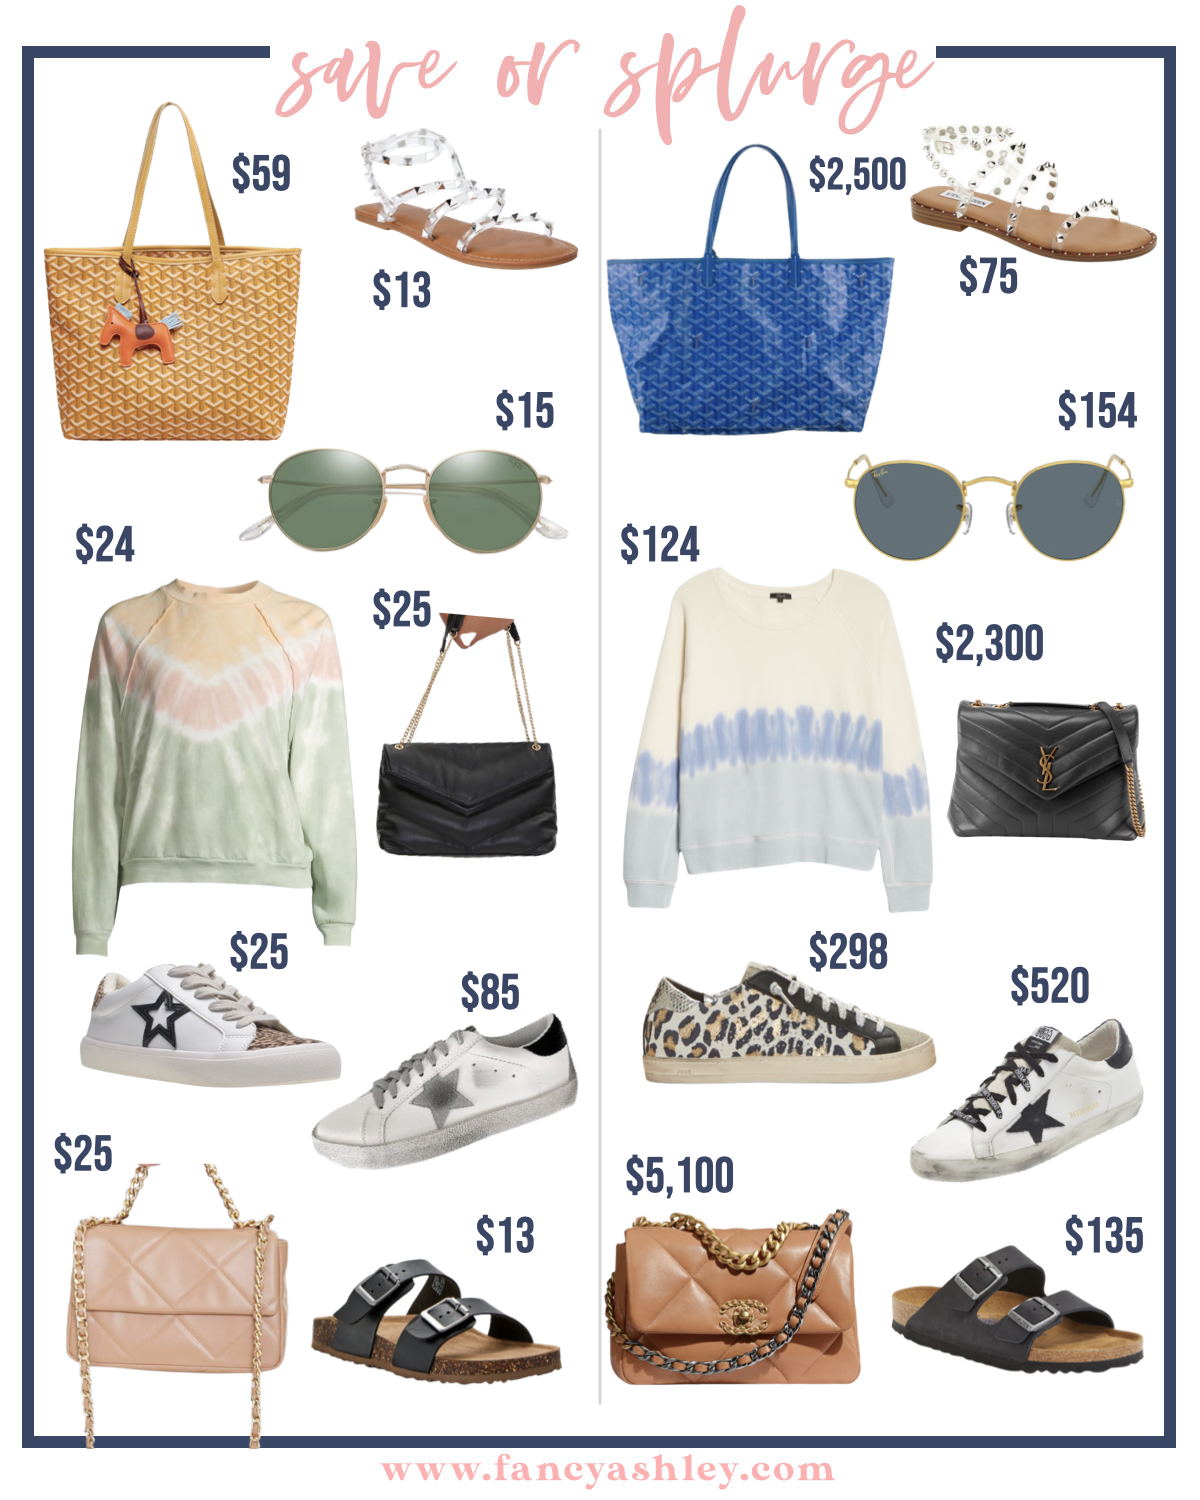 Save or Splurge by popular Houston fashion blog, Fancy Ashley: collage image of a woven bag, tie dye sweatshirts, clear strap studded sandals, aviator sunglasses, black and gold chain purse, white star print sneakers, leopard print sneakers, brown and gold chain purse, black strap slide sandals.